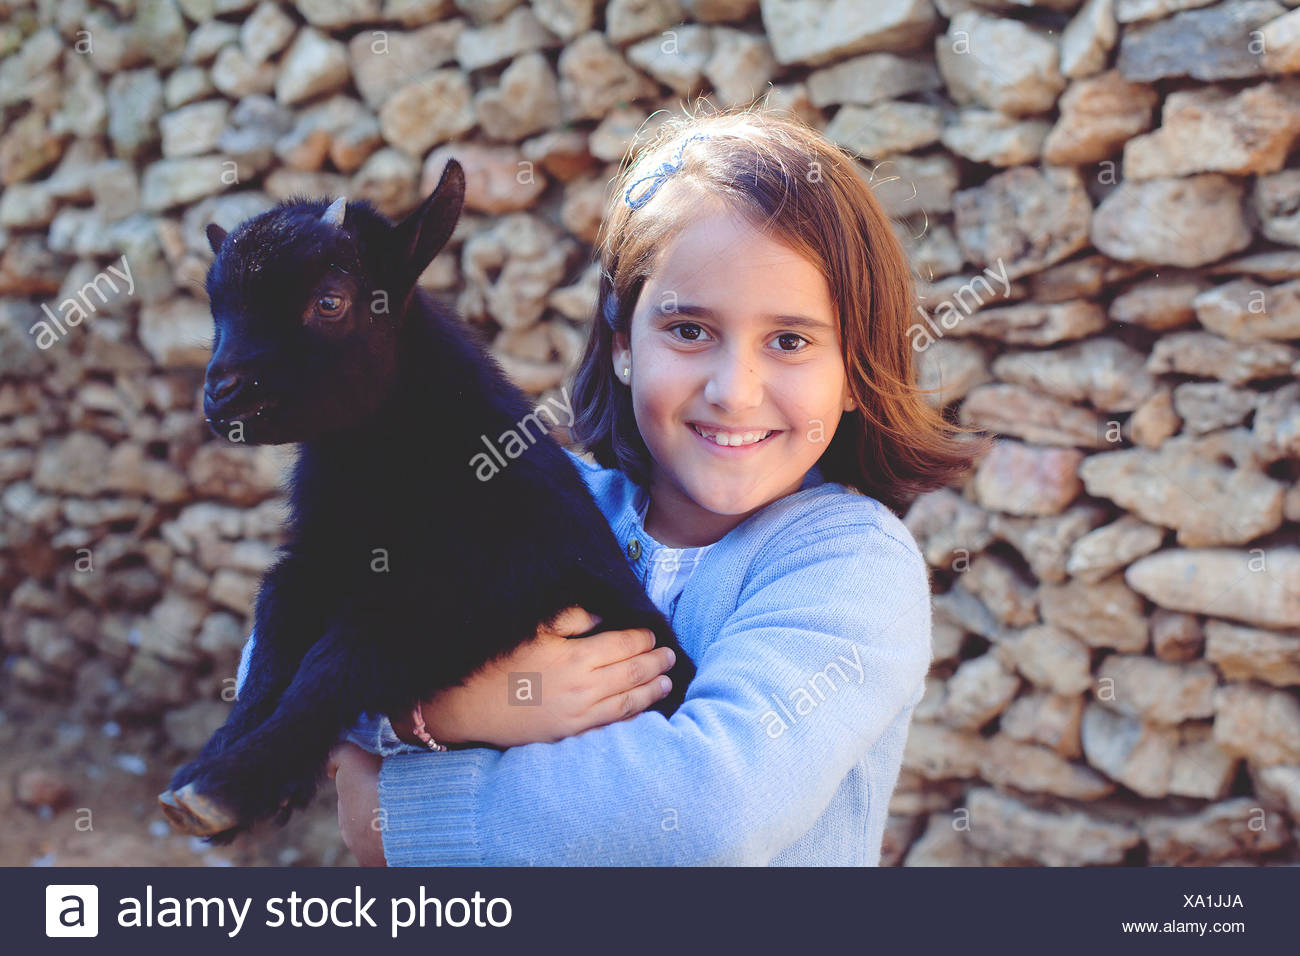 Portrait of girl (6-7) with pet goat - Stock Image